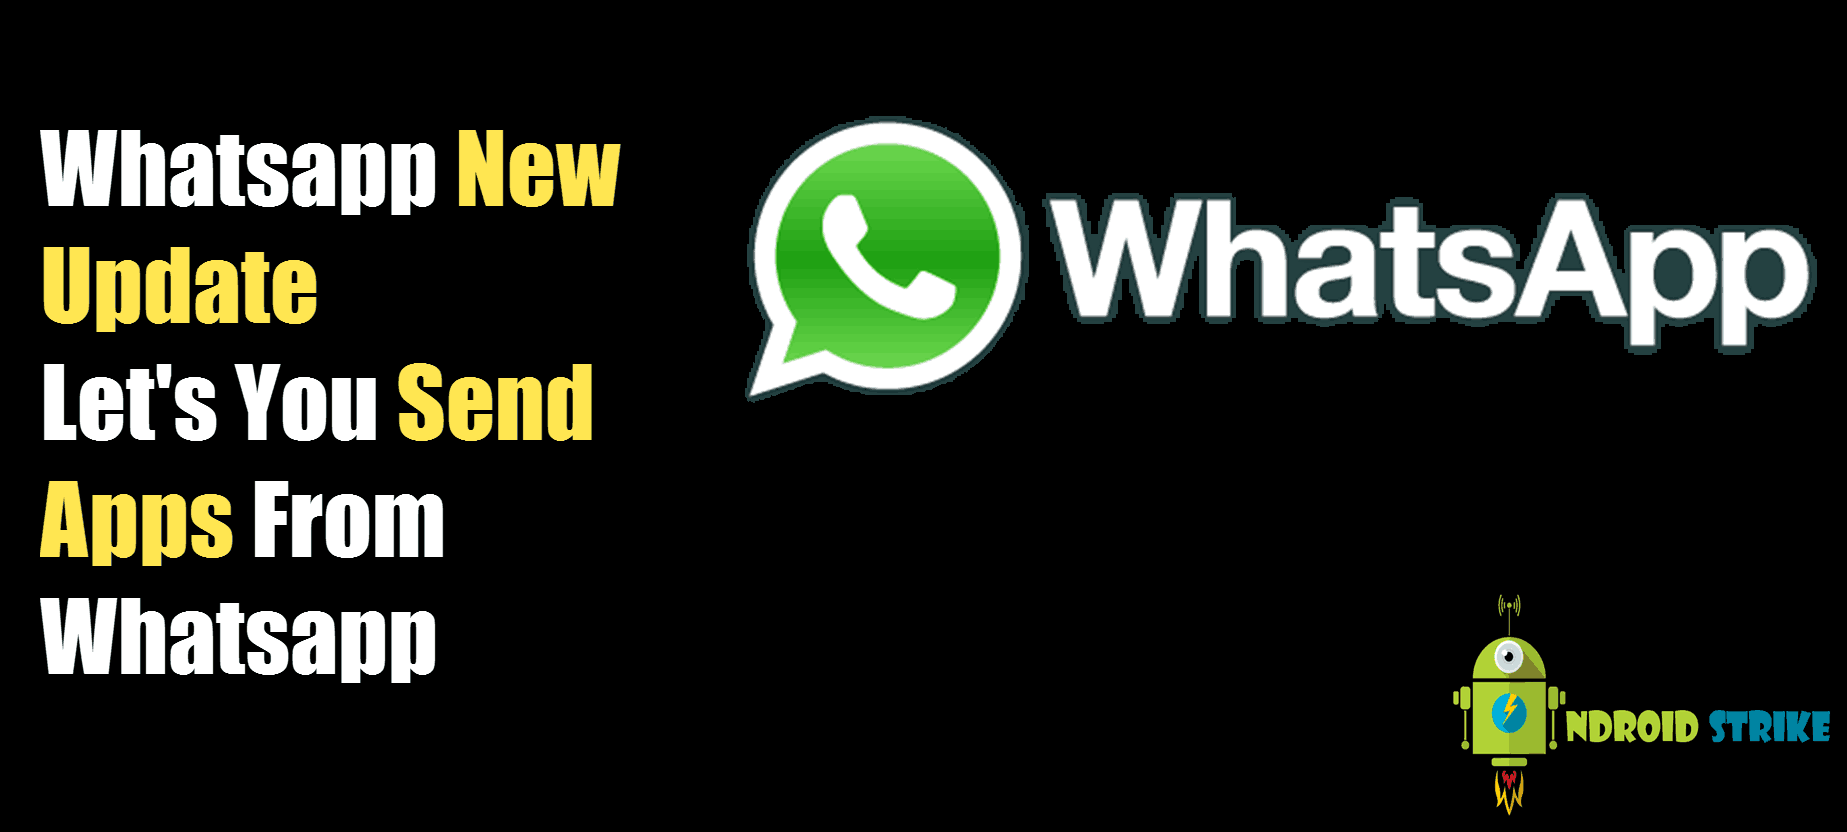 WhatsApp New Update: Allows you to Send Apps and Games to Friends